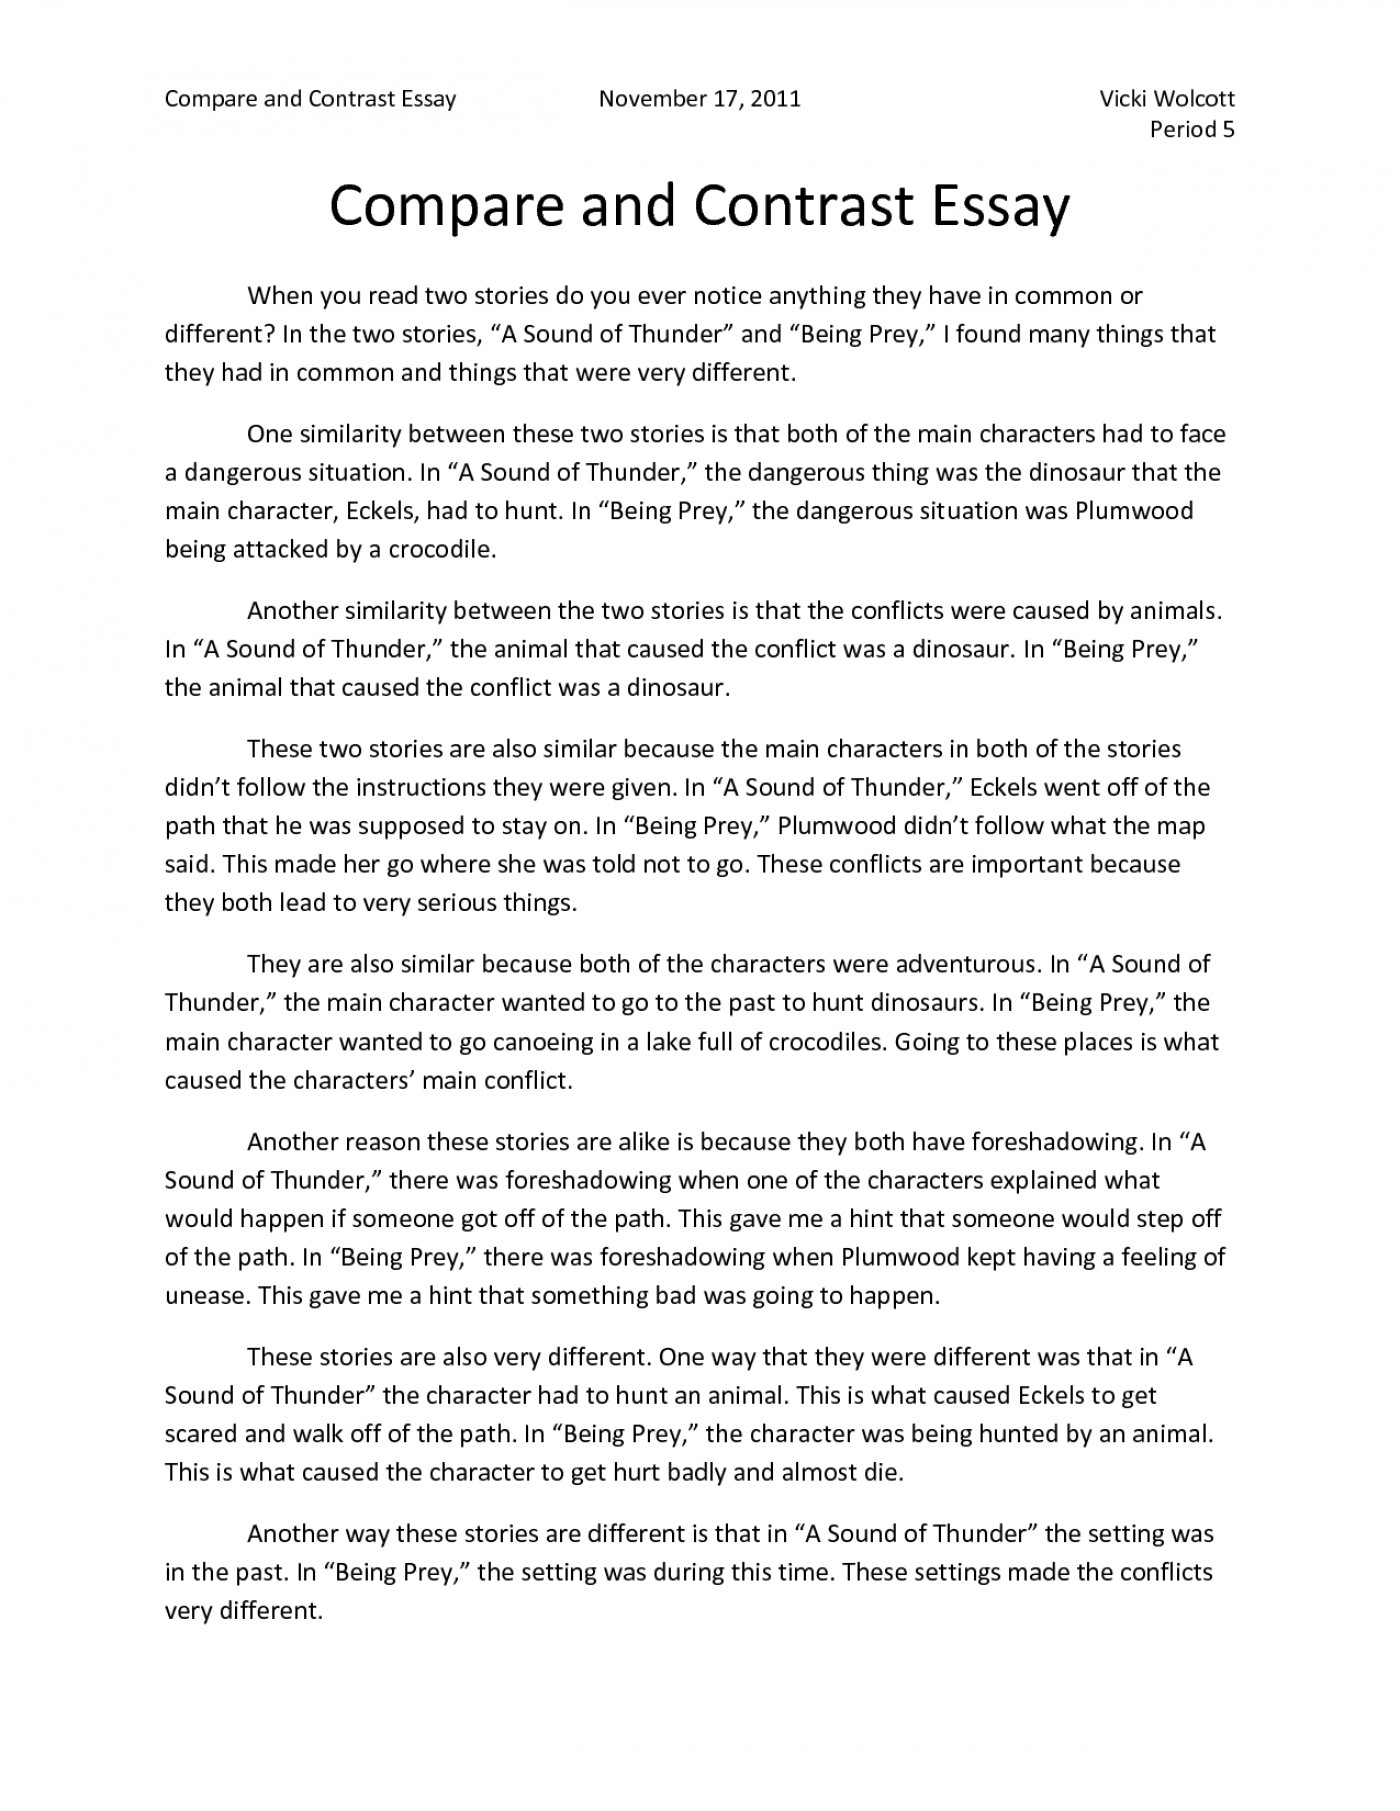 004 Essay Example Compare And Contrast Gallery Template Drawing Art Throughout College Examples Introduction Question Scholarship Free Edexcel Conclusion Frightening Topics For Students Rubric 4th Grade Ideas 7th 1400